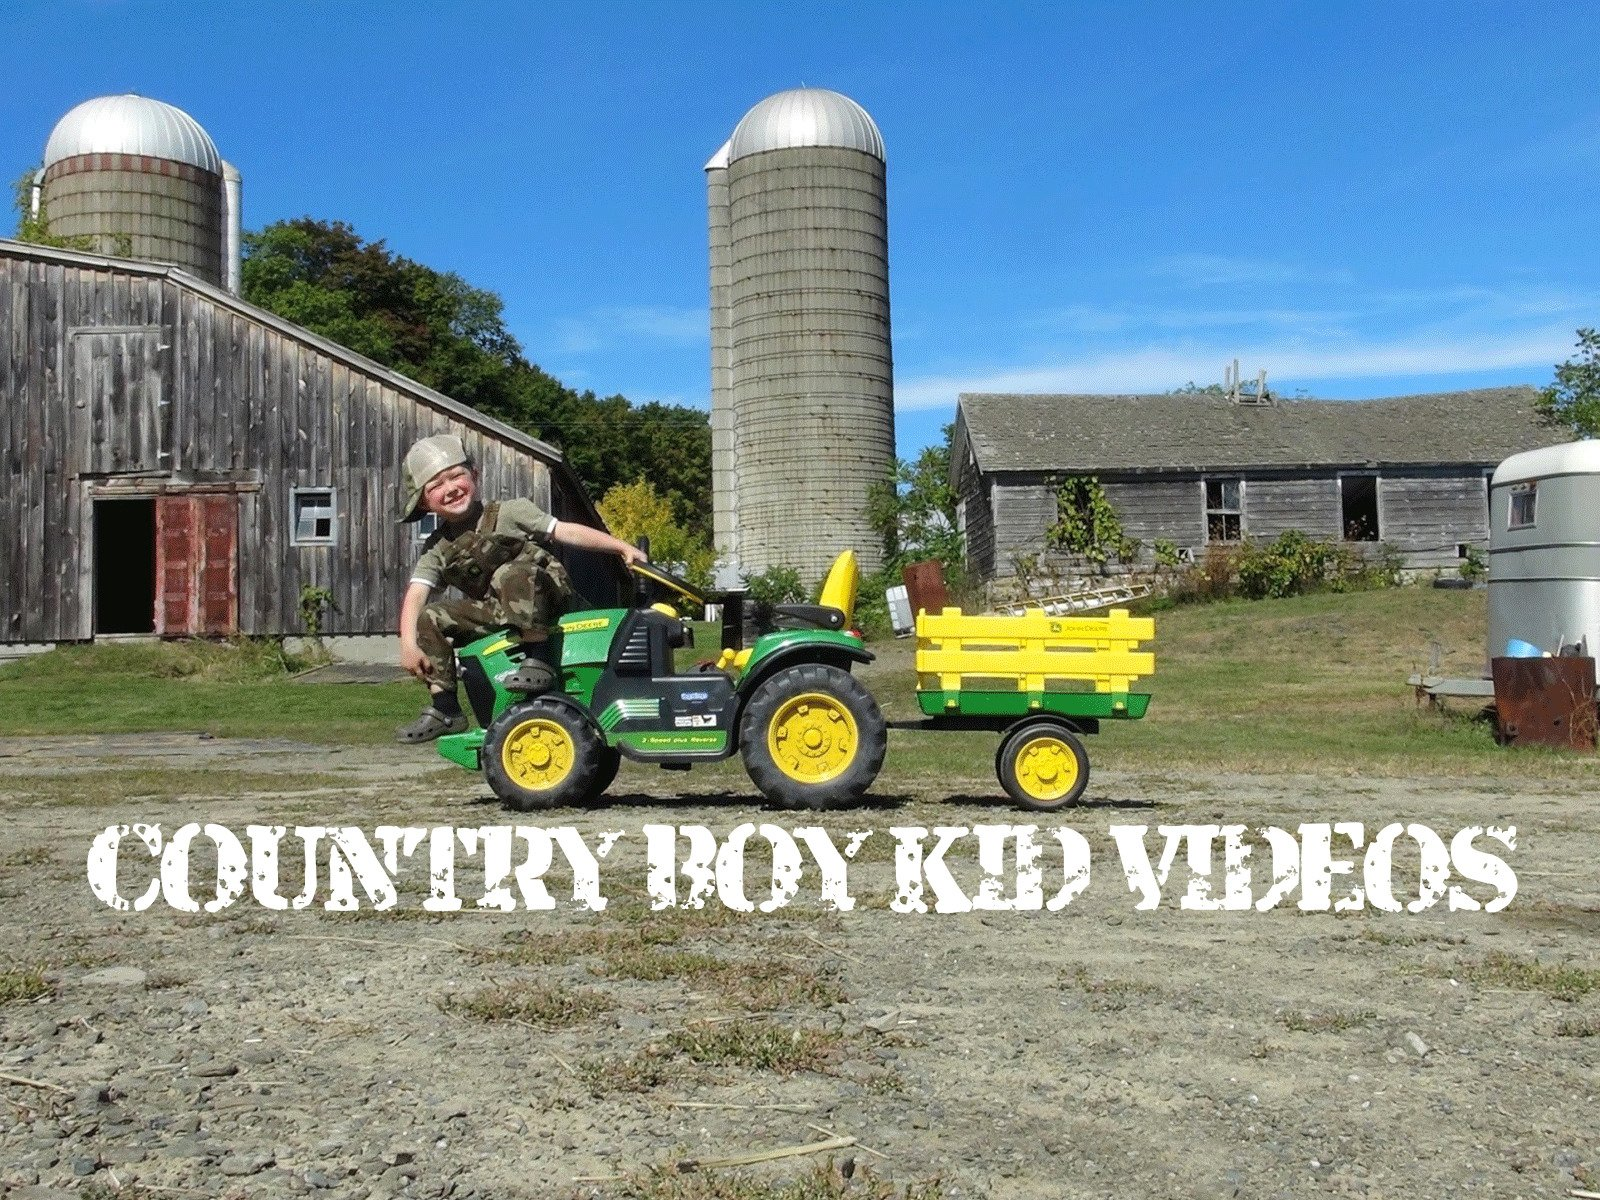 Country Boy Kid Videos - Season 1